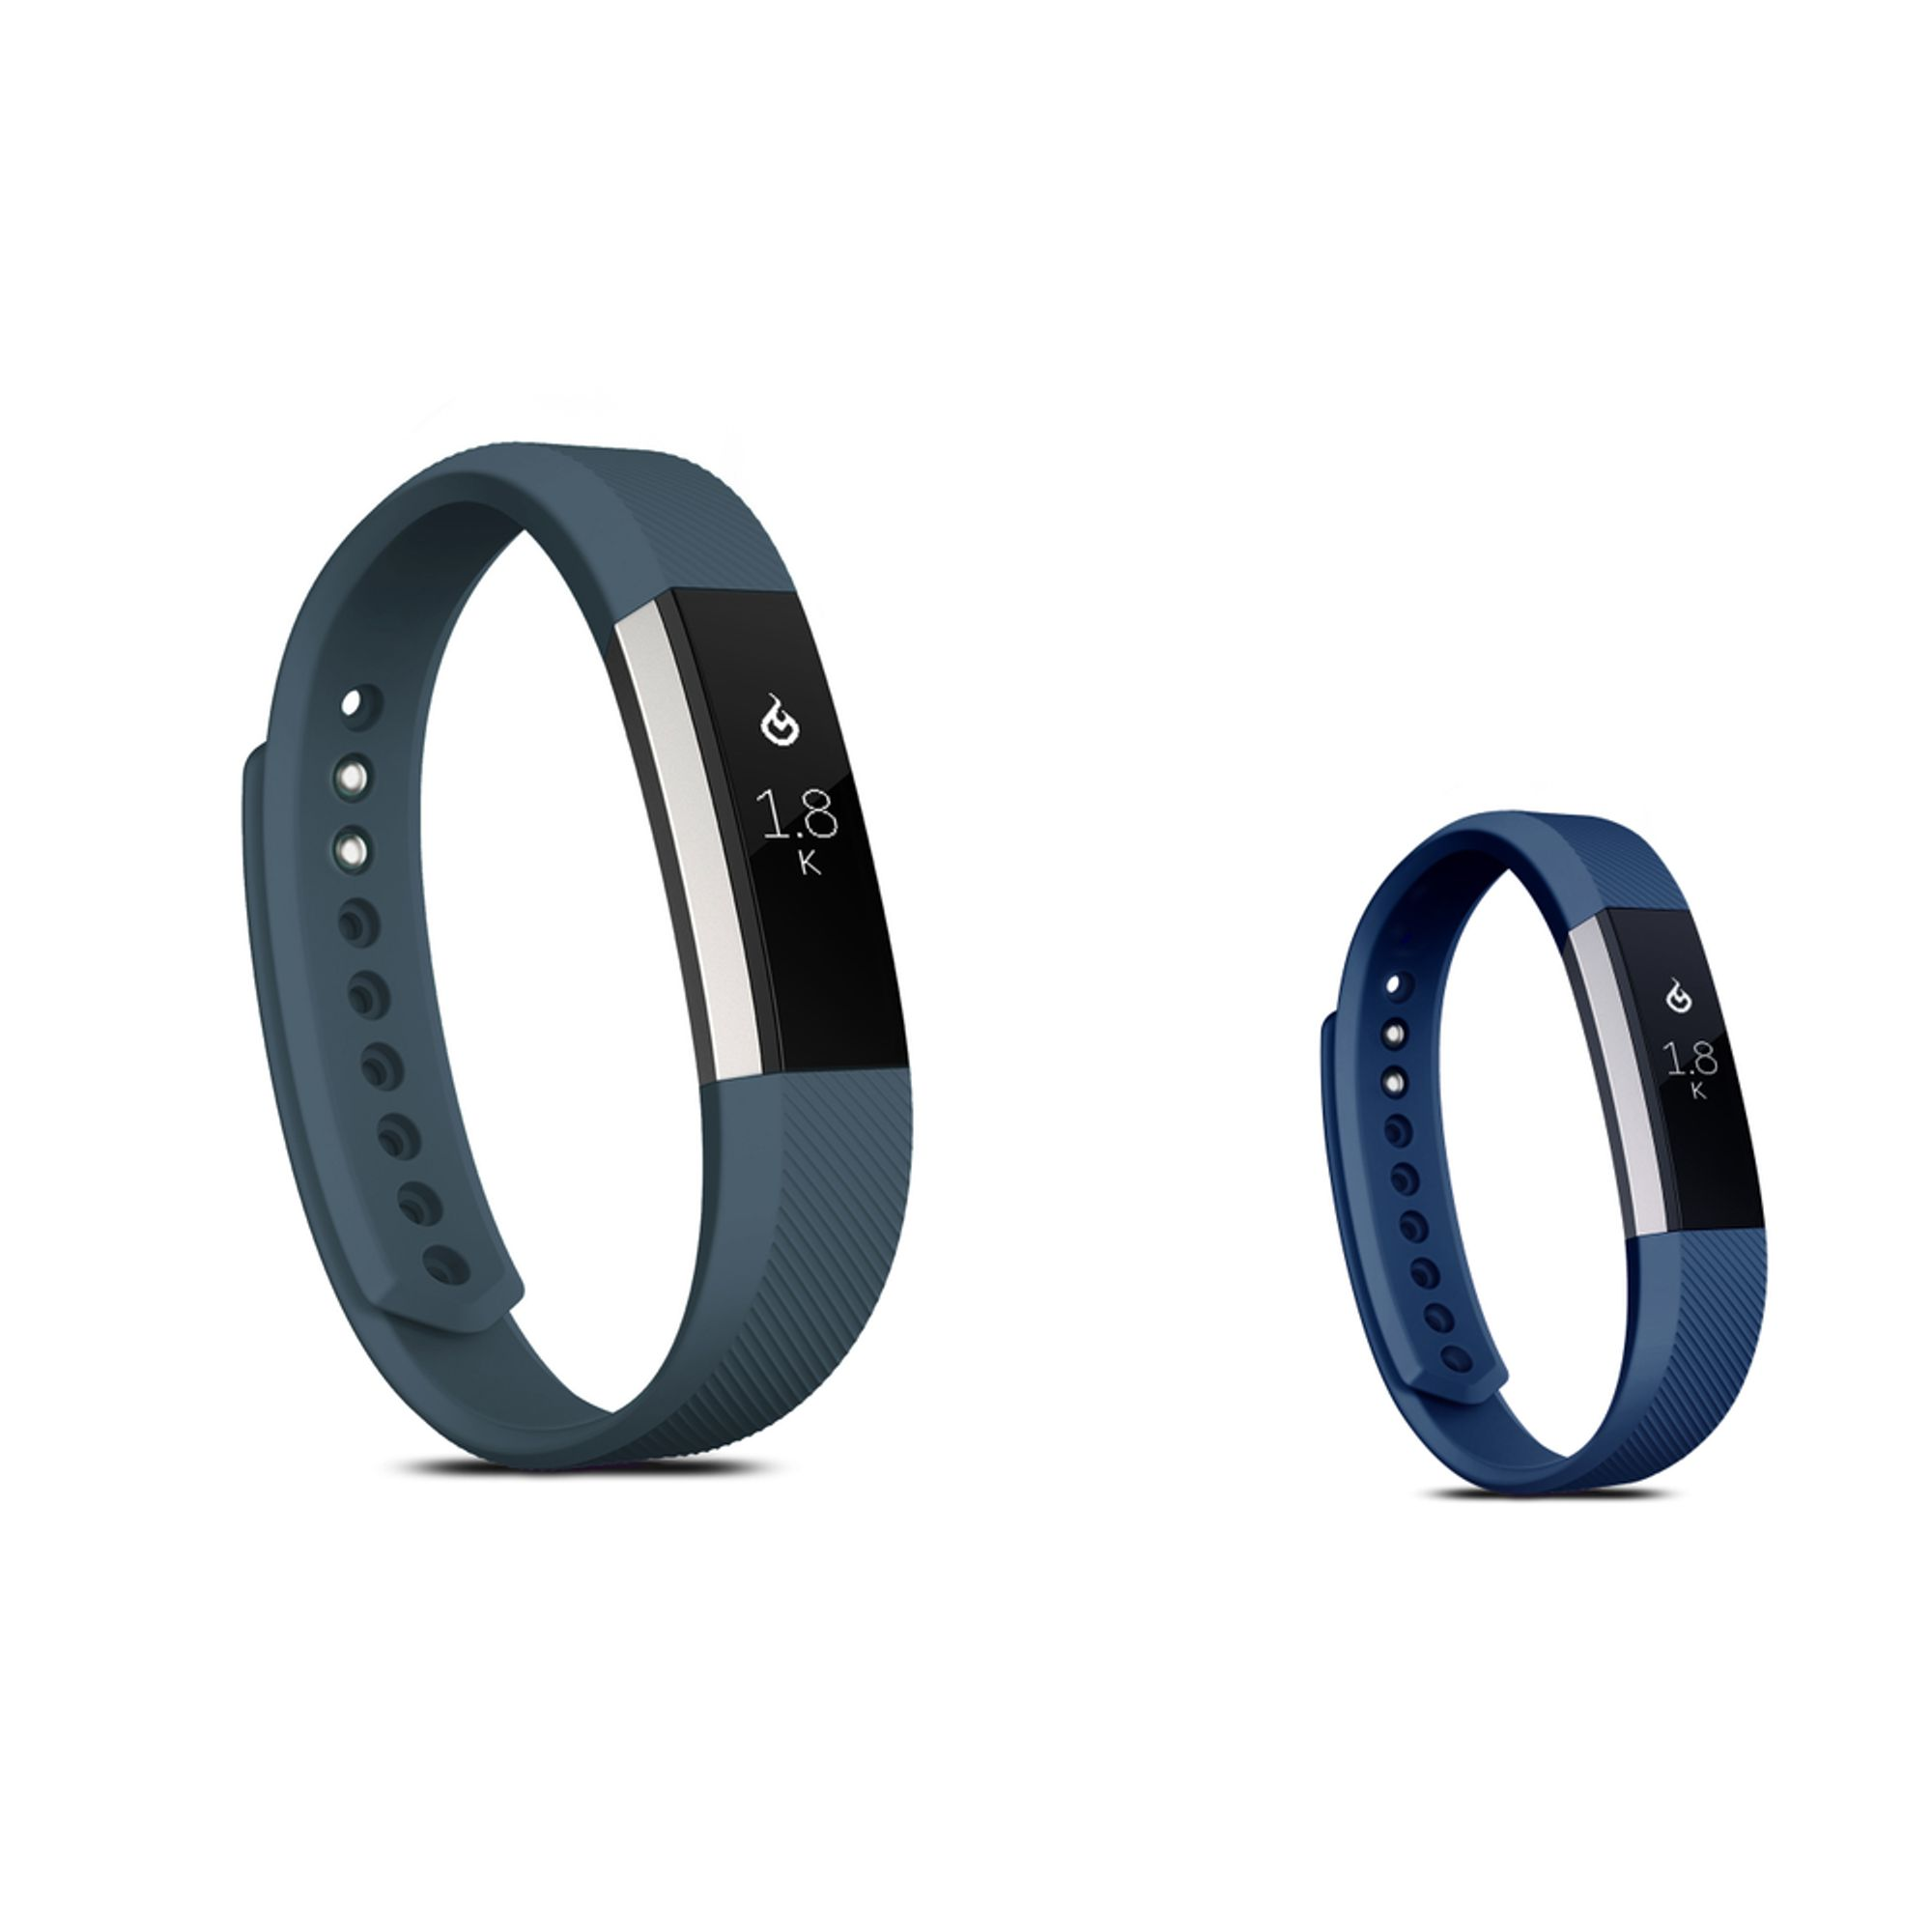 Zodaca Soft TPU Rubber Adjustable Wristbands Watch Band Strap For Fitbit Alta HR / Alta SMALL Size - Dark Gray + Navy